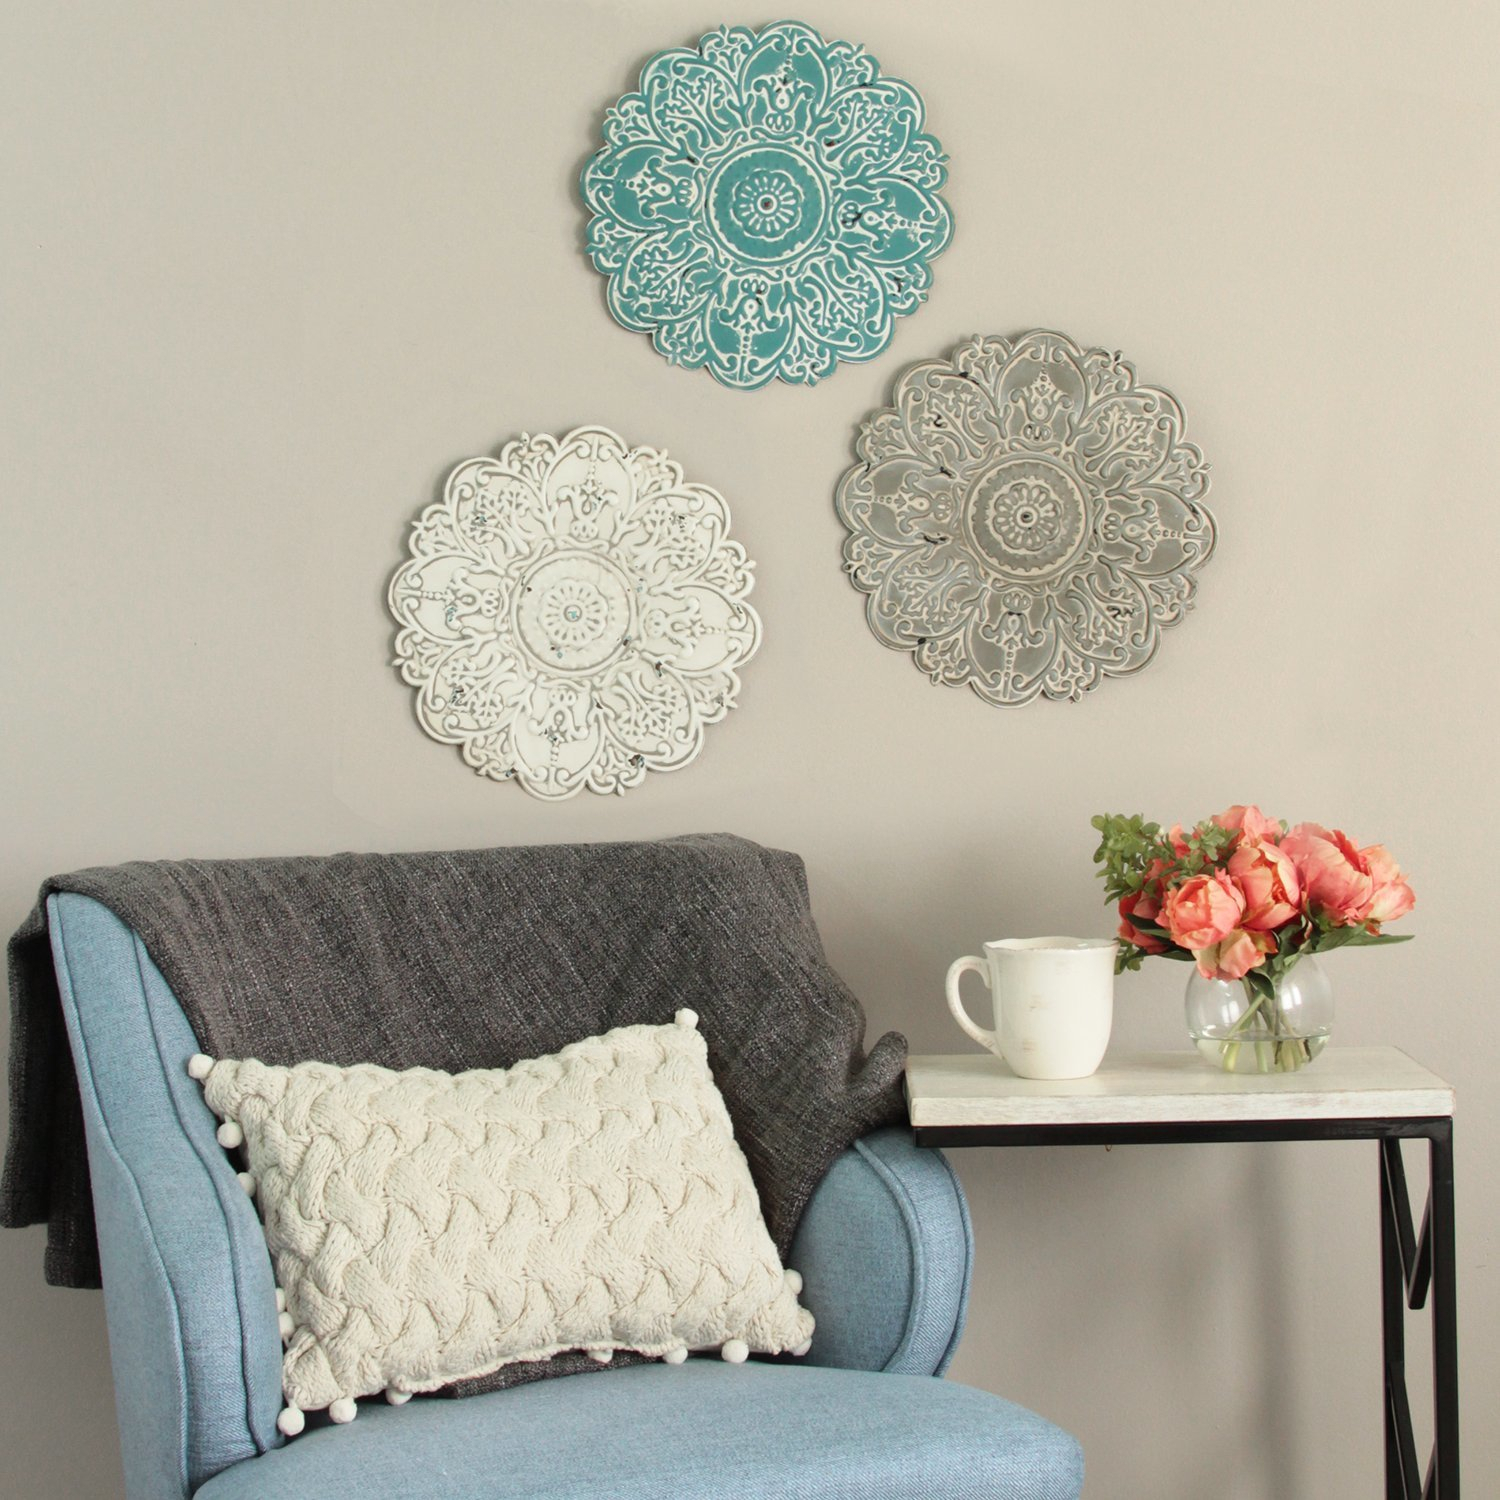 Small Medallion Wall Decor For 2020 Bungalow Rose Small Medallion Wall Décor & Reviews (View 11 of 20)